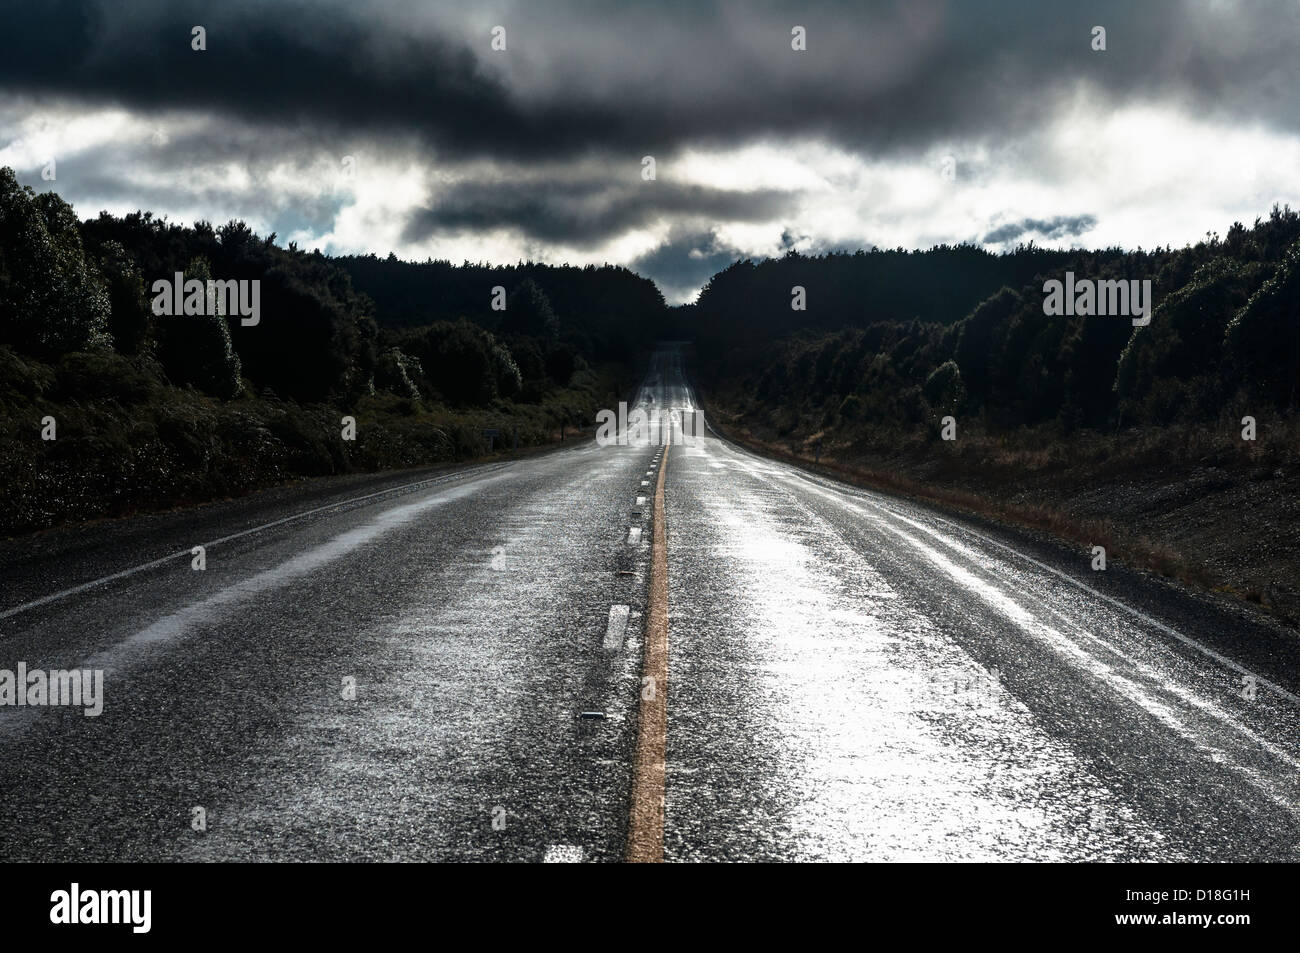 Paved road in rural landscape - Stock Image